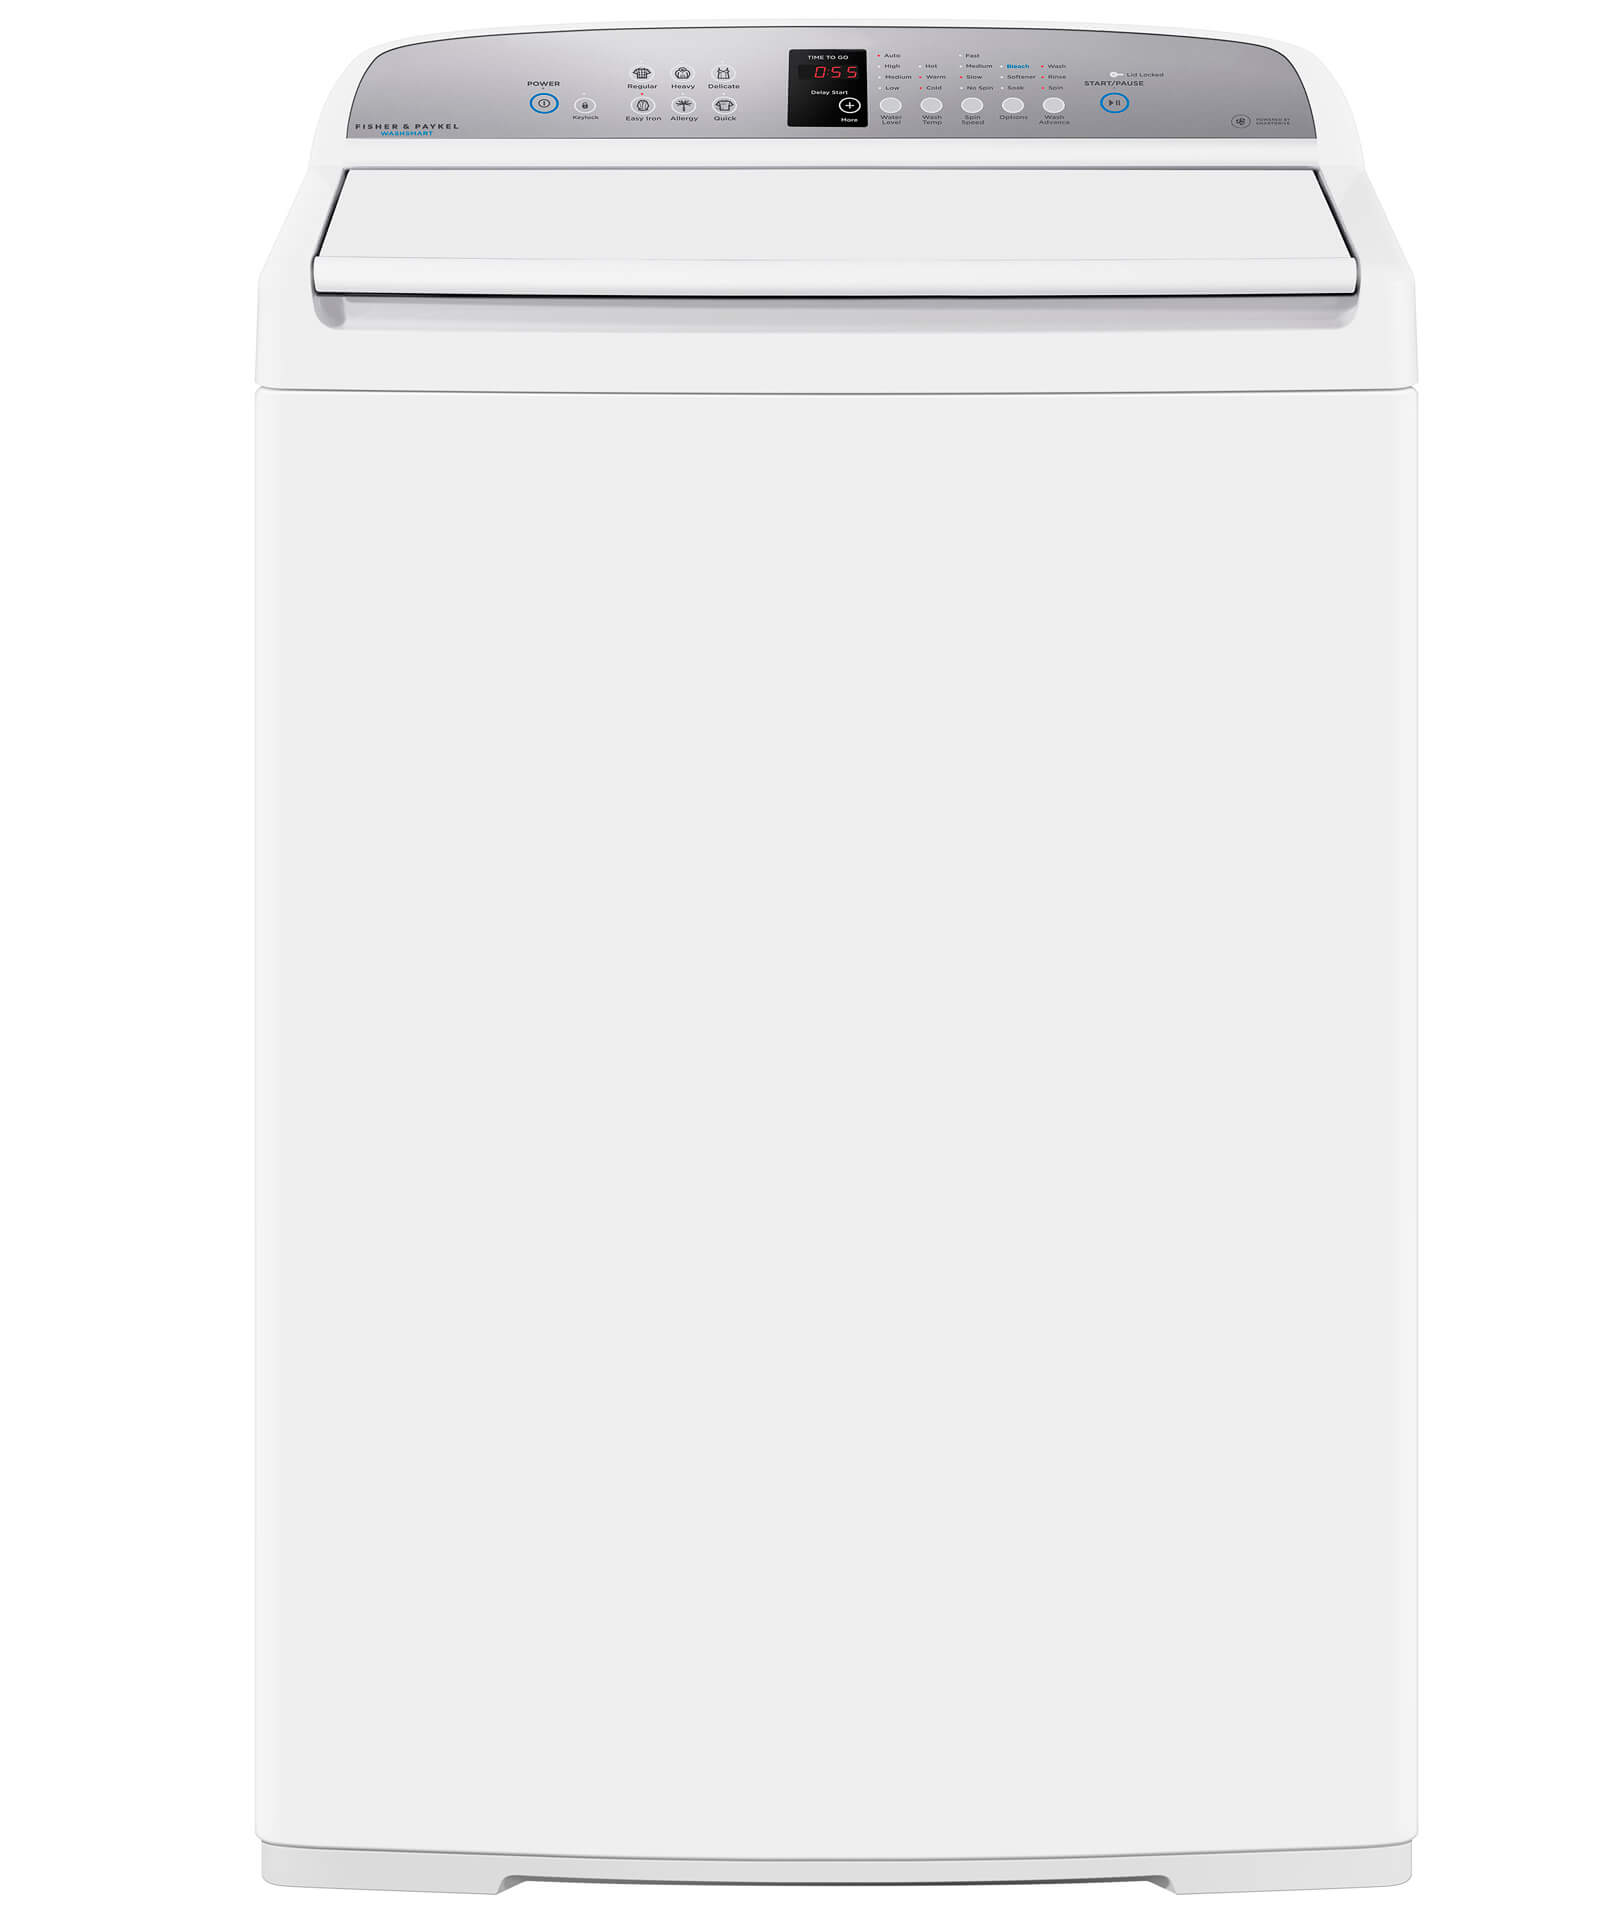 Fisher and Paykel Top Loader Washing Machine, 3.9 cu ft WashSmart™